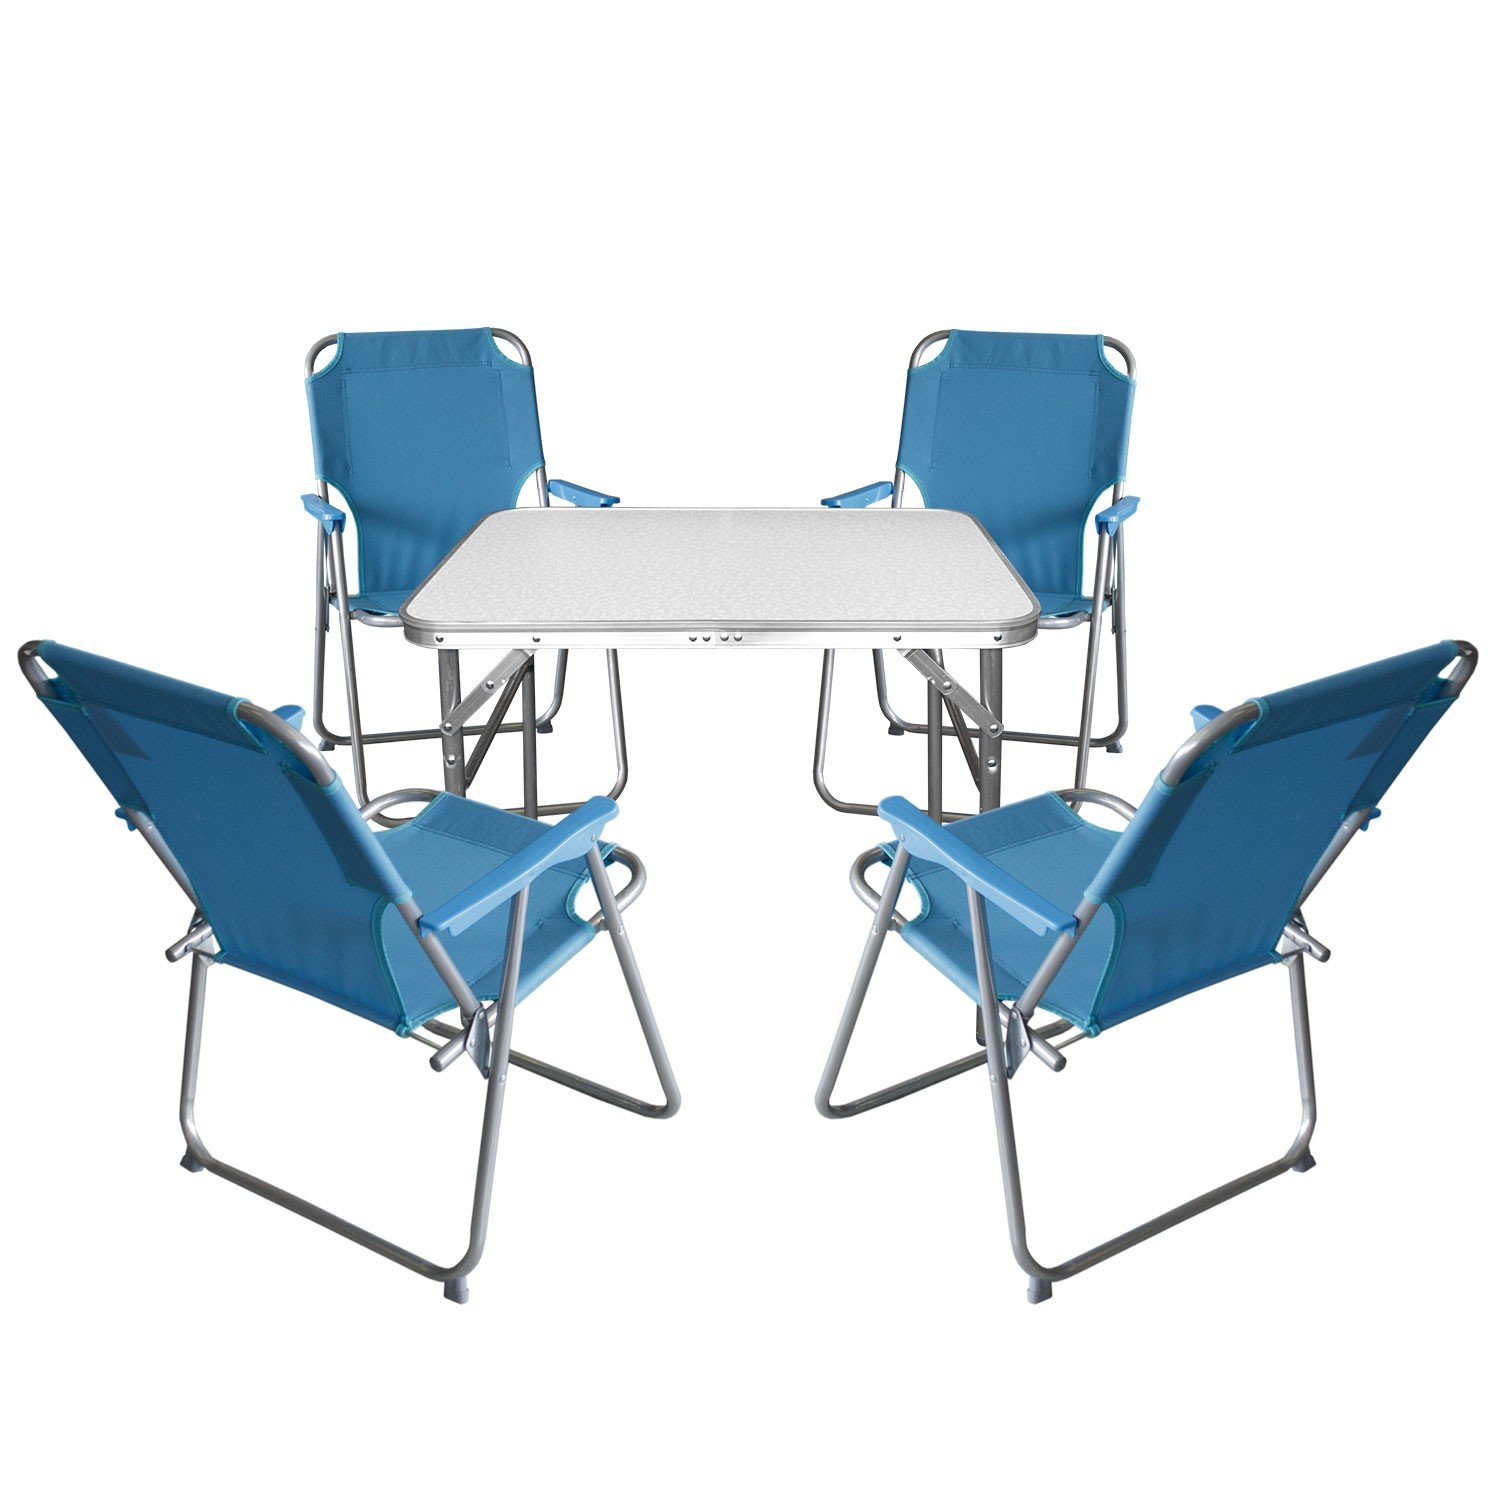 5tlg campingm bel set klapptisch aluminium 55x75cm 4x campingstuhl blau strandm bel. Black Bedroom Furniture Sets. Home Design Ideas